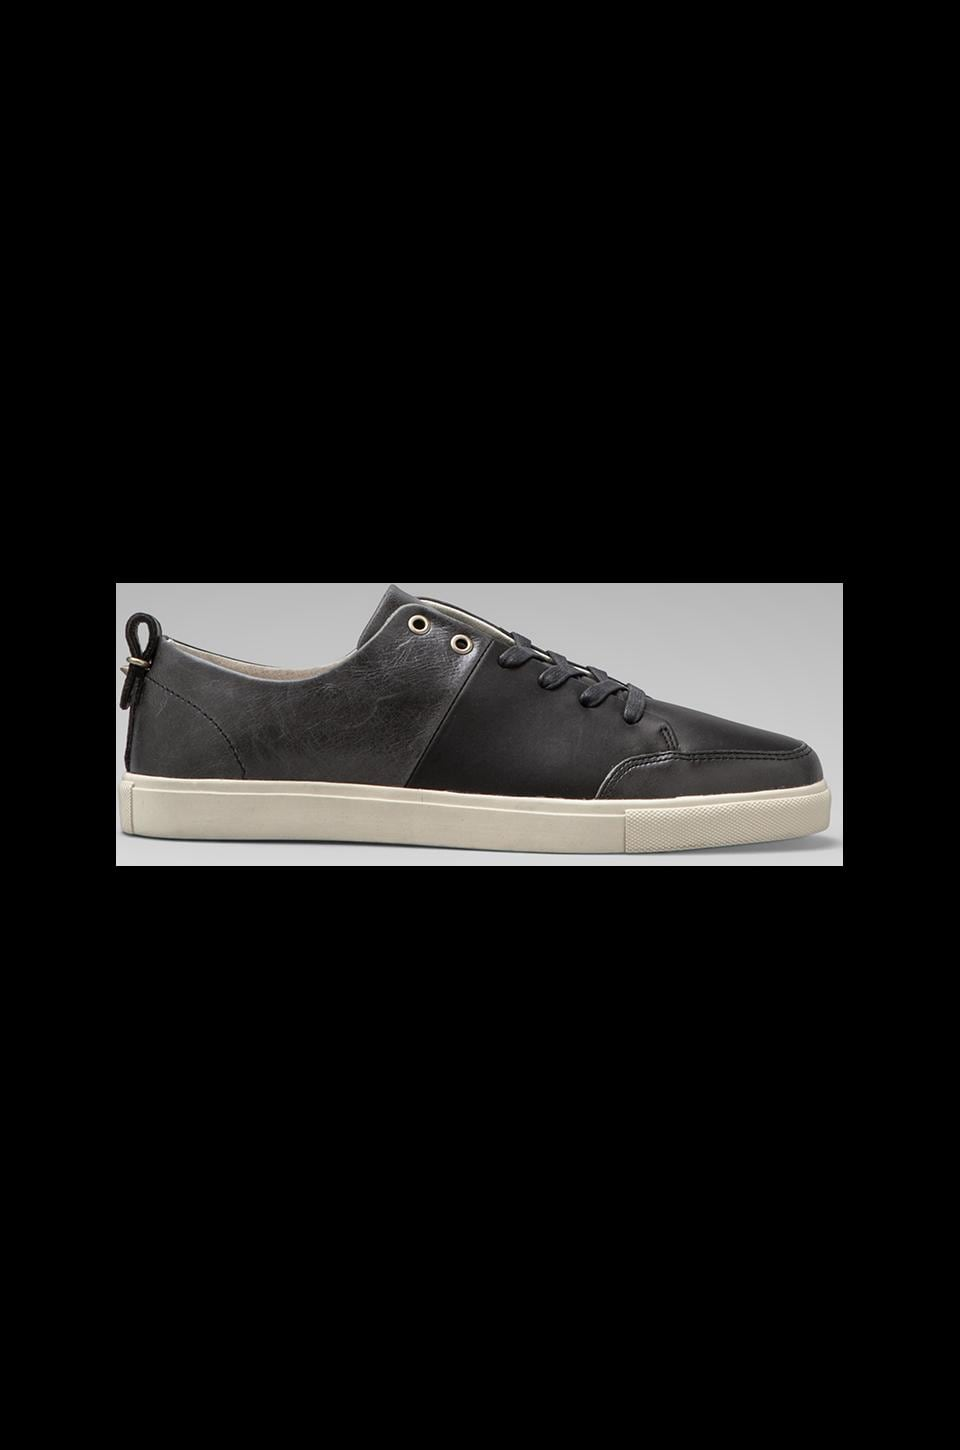 Haerfest Leather Trainers in Matte Black/ Marbelized Black